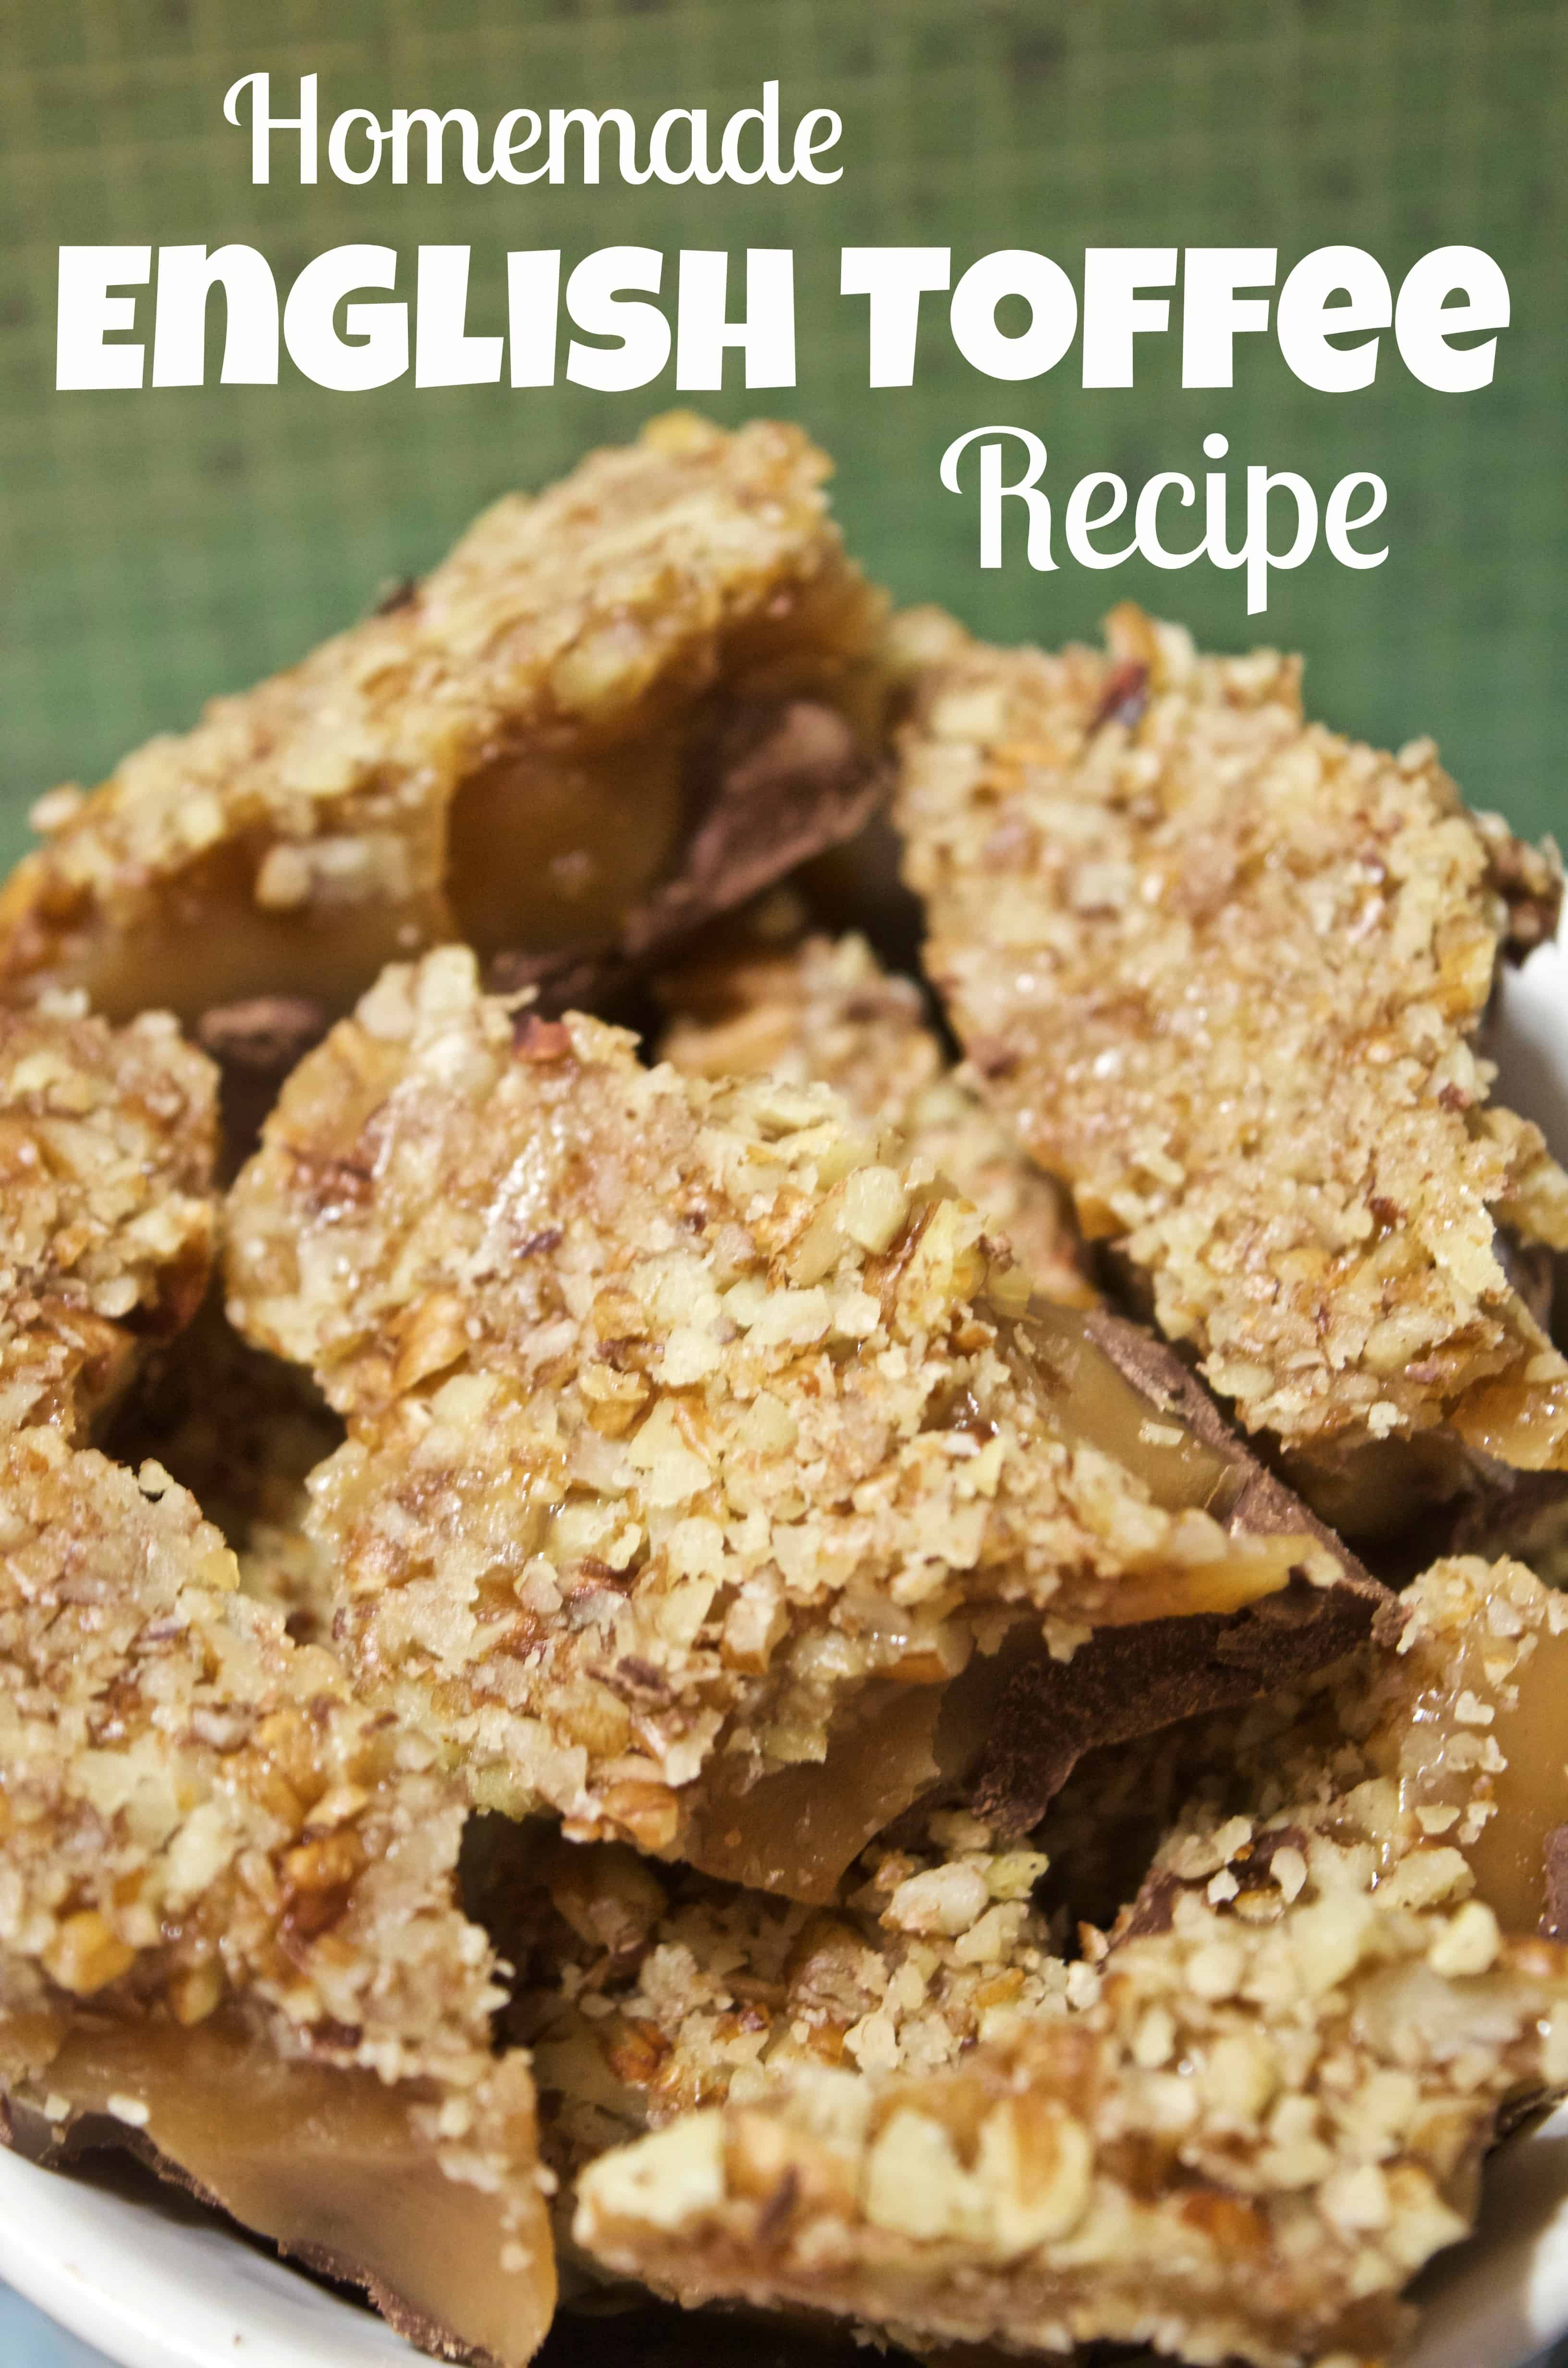 Simple Homemade English Toffee Candy Recipe Tutorial